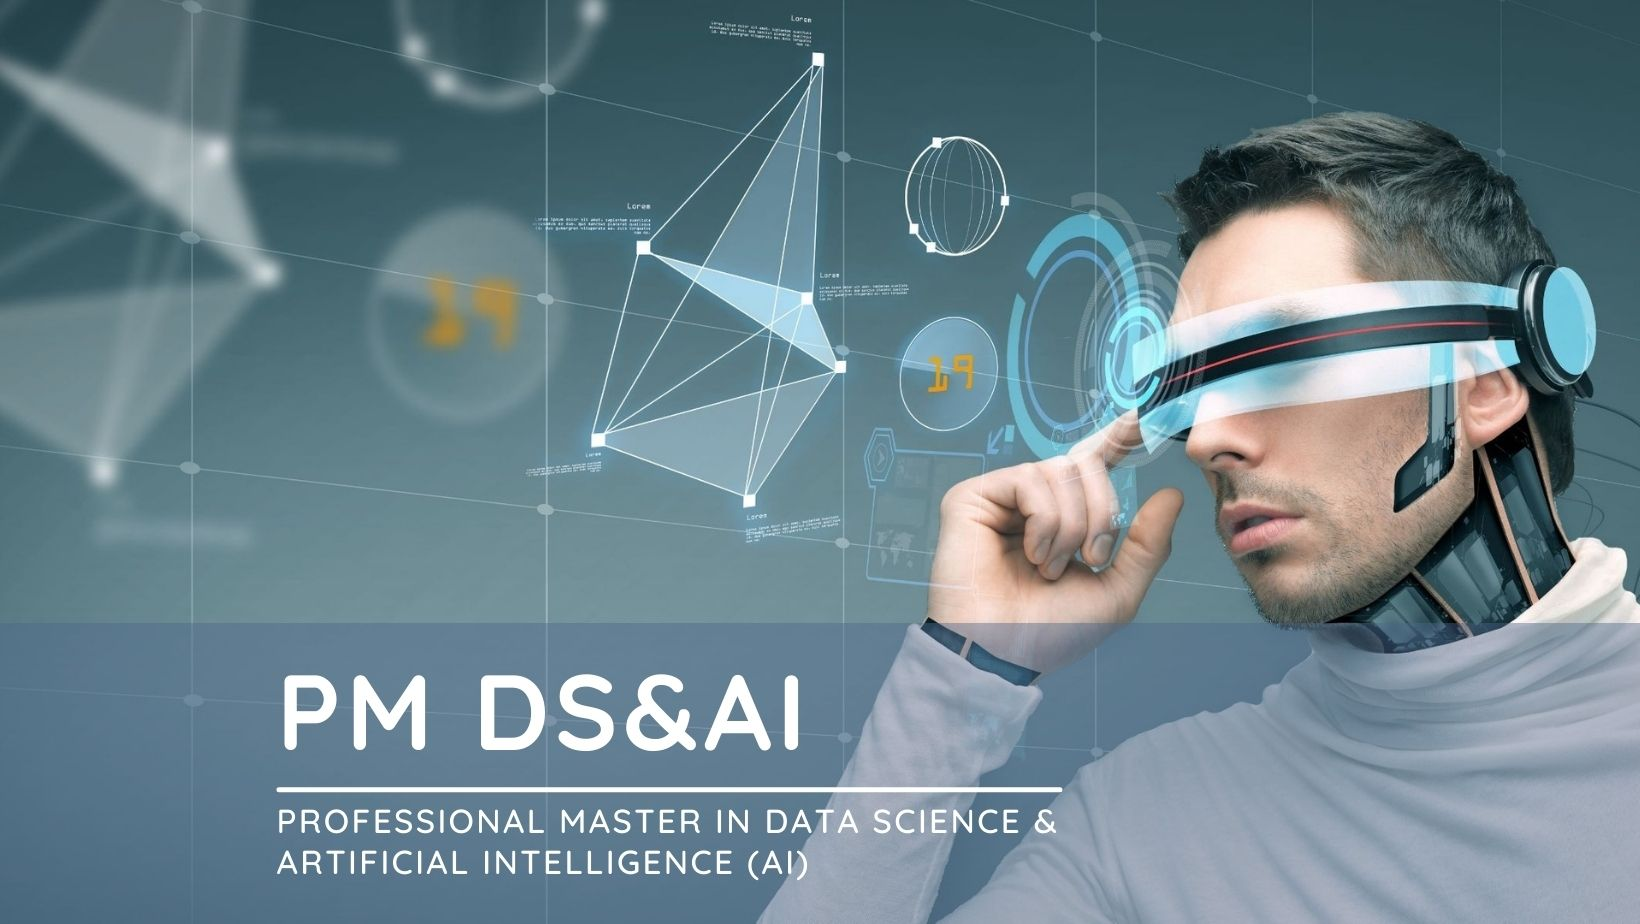 Professional Master of Data Science and Artificial Intelligence (AI)